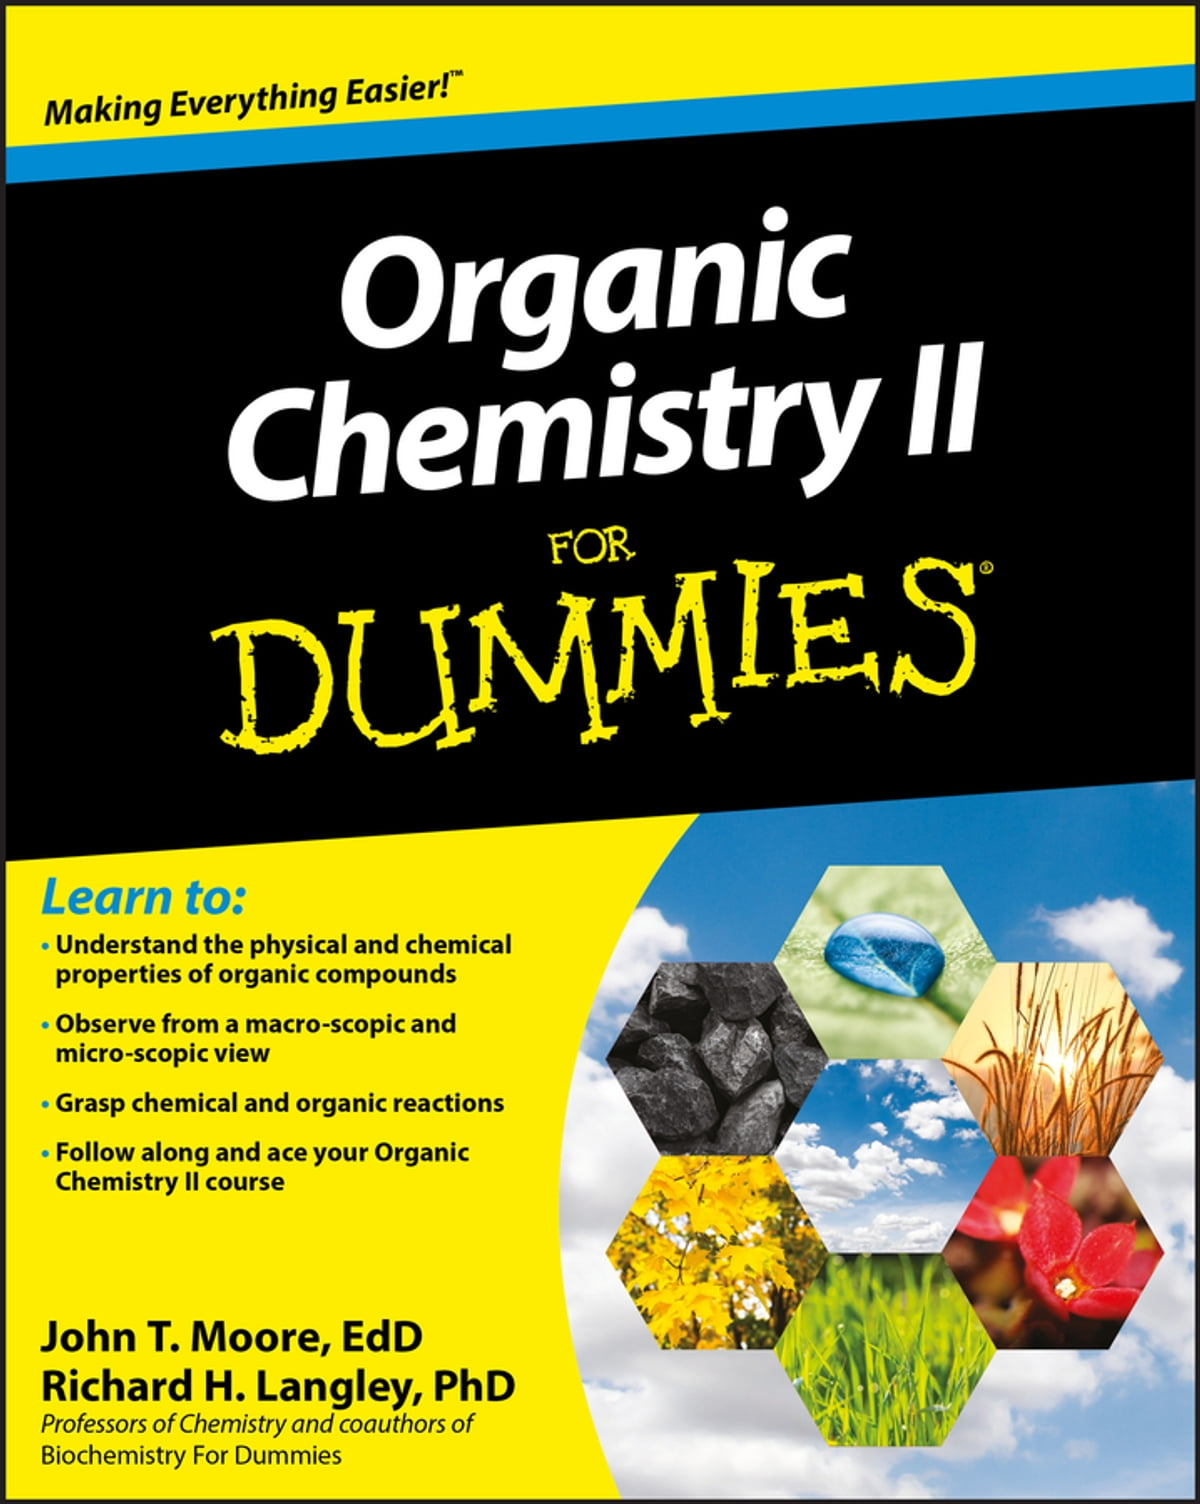 Organic Chemistry II For Dummies eBook by John T. Moore - 9780470770337 |  Rakuten Kobo